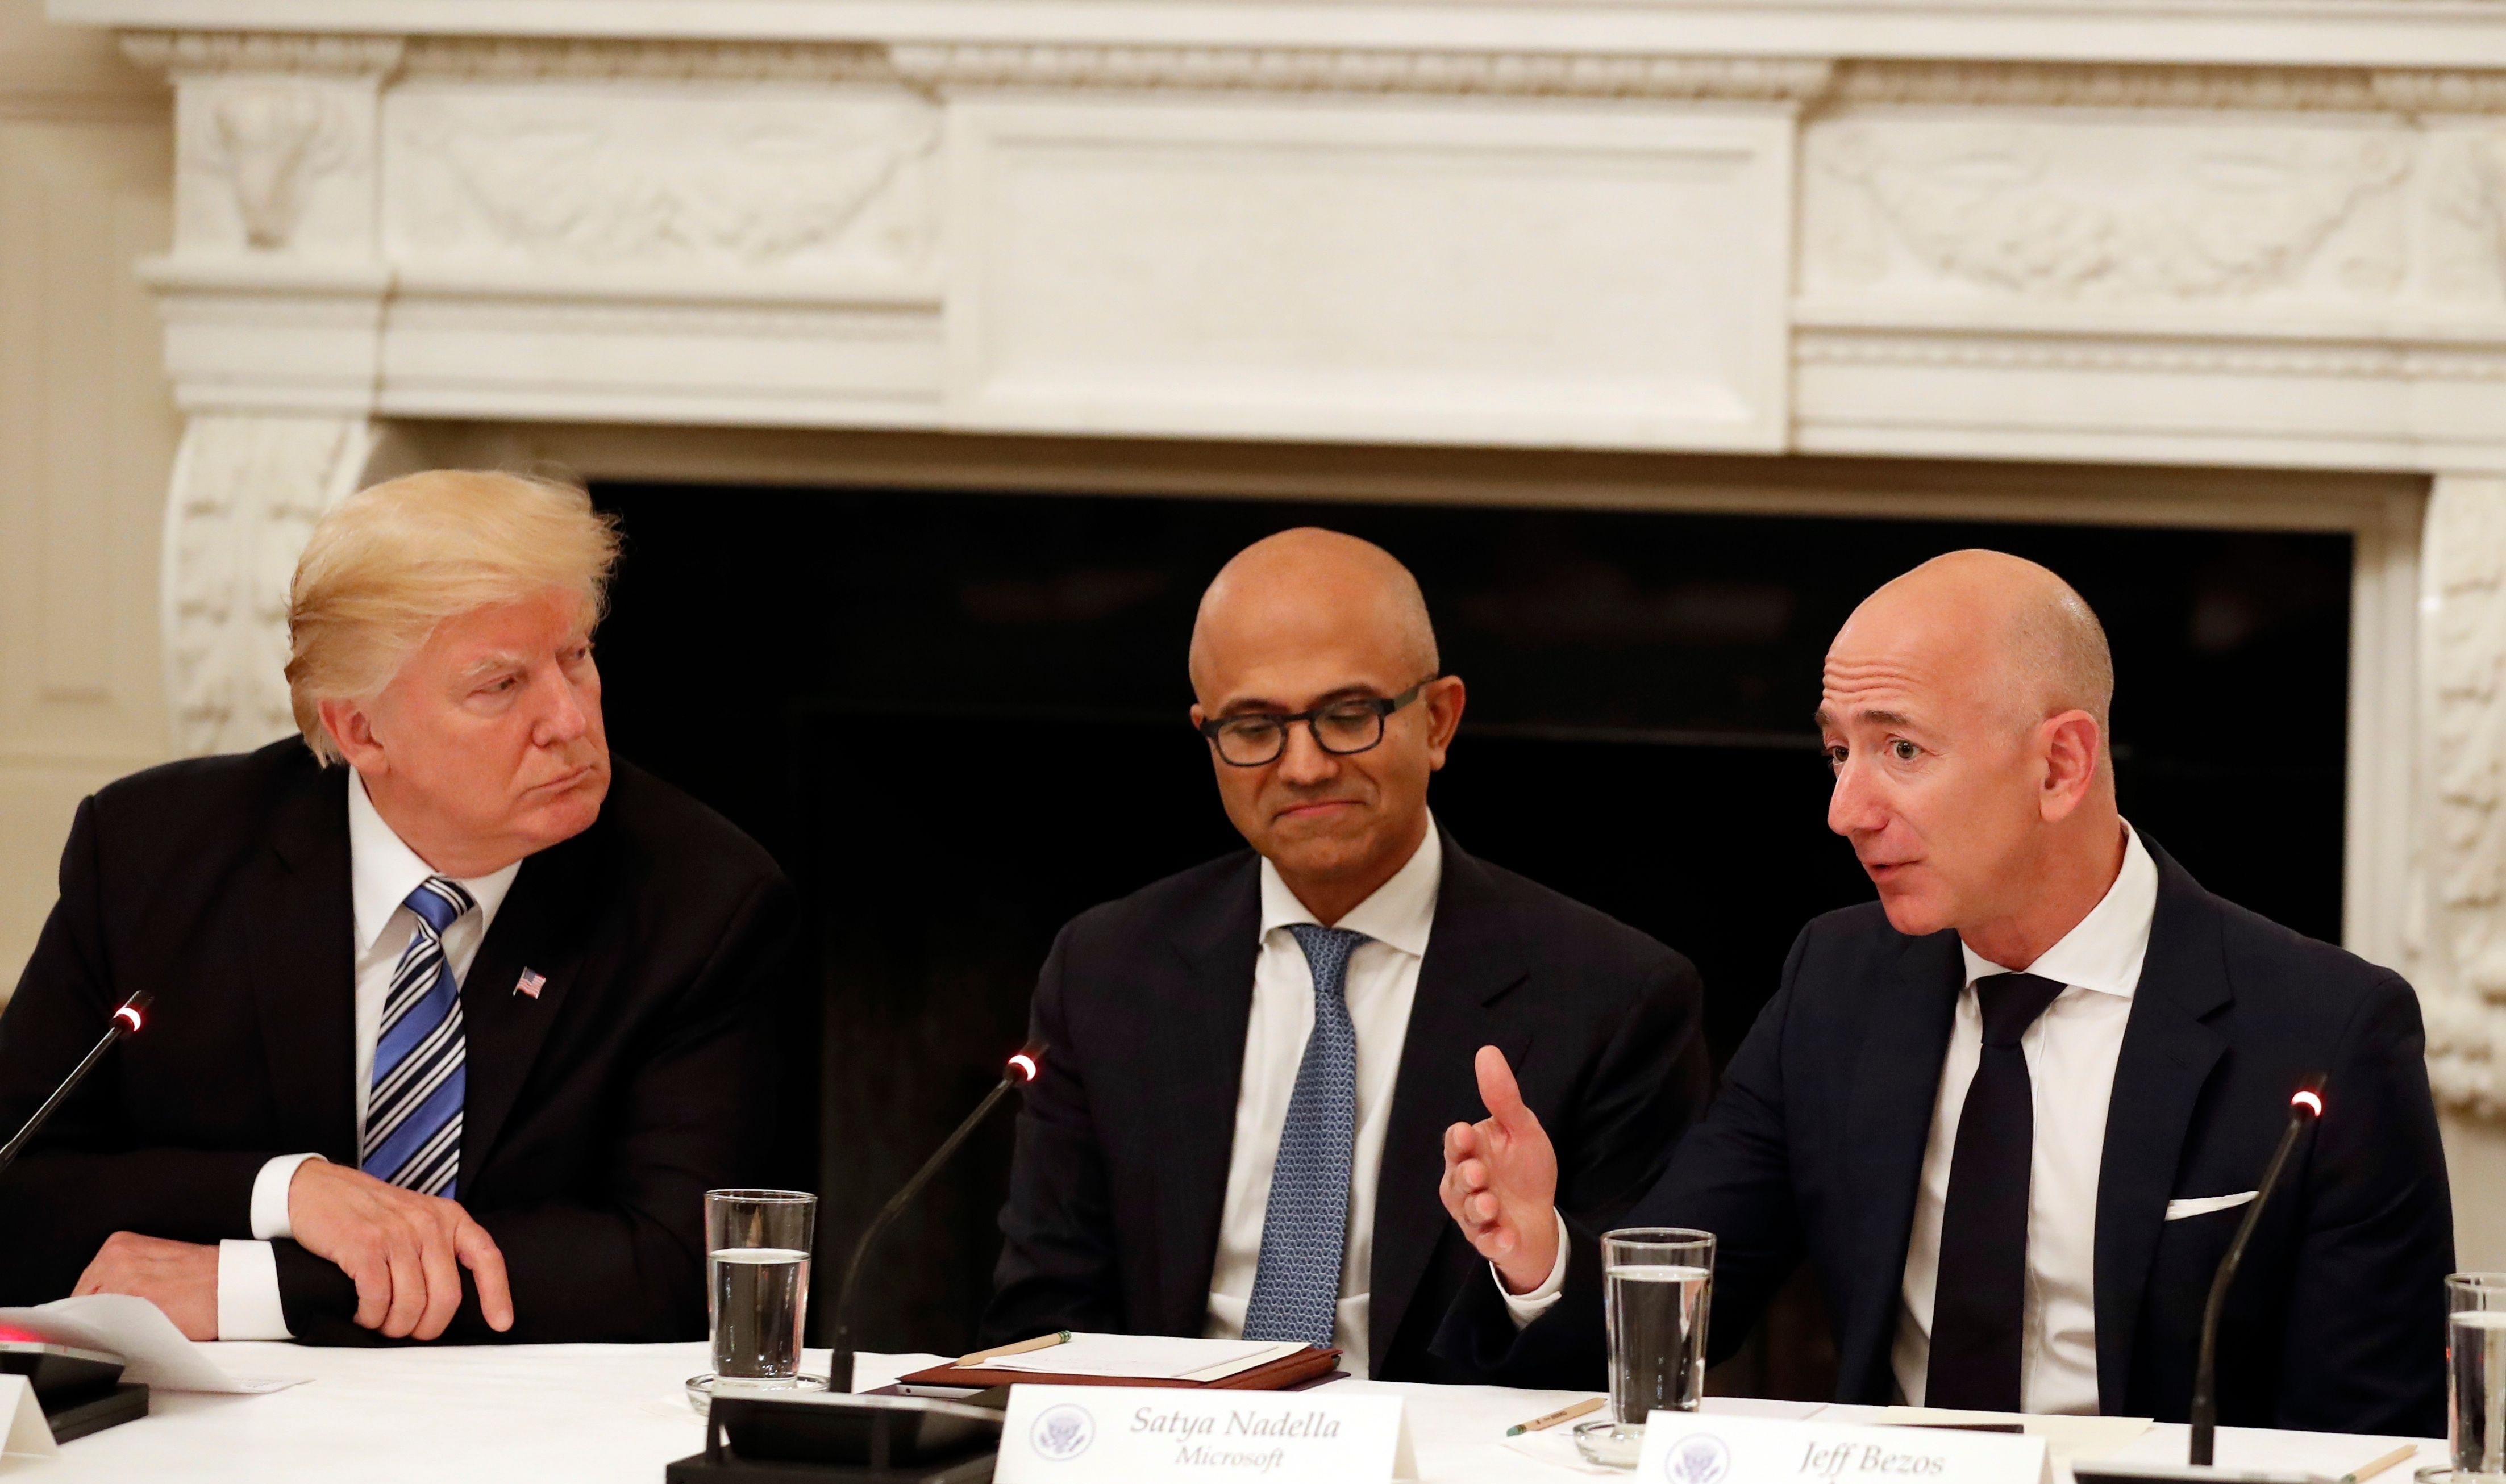 President Donald Trump, left, and Satya Nadella, Chief Executive Officer of Microsoft, center, listen as Jeff Bezos, Chief Executive Officer of Amazon, speaks during an American Technology Council roundtable in the State Dinning Room of the White House, Monday, June 19, 2017, in Washington. (AP Photo/Alex Brandon)